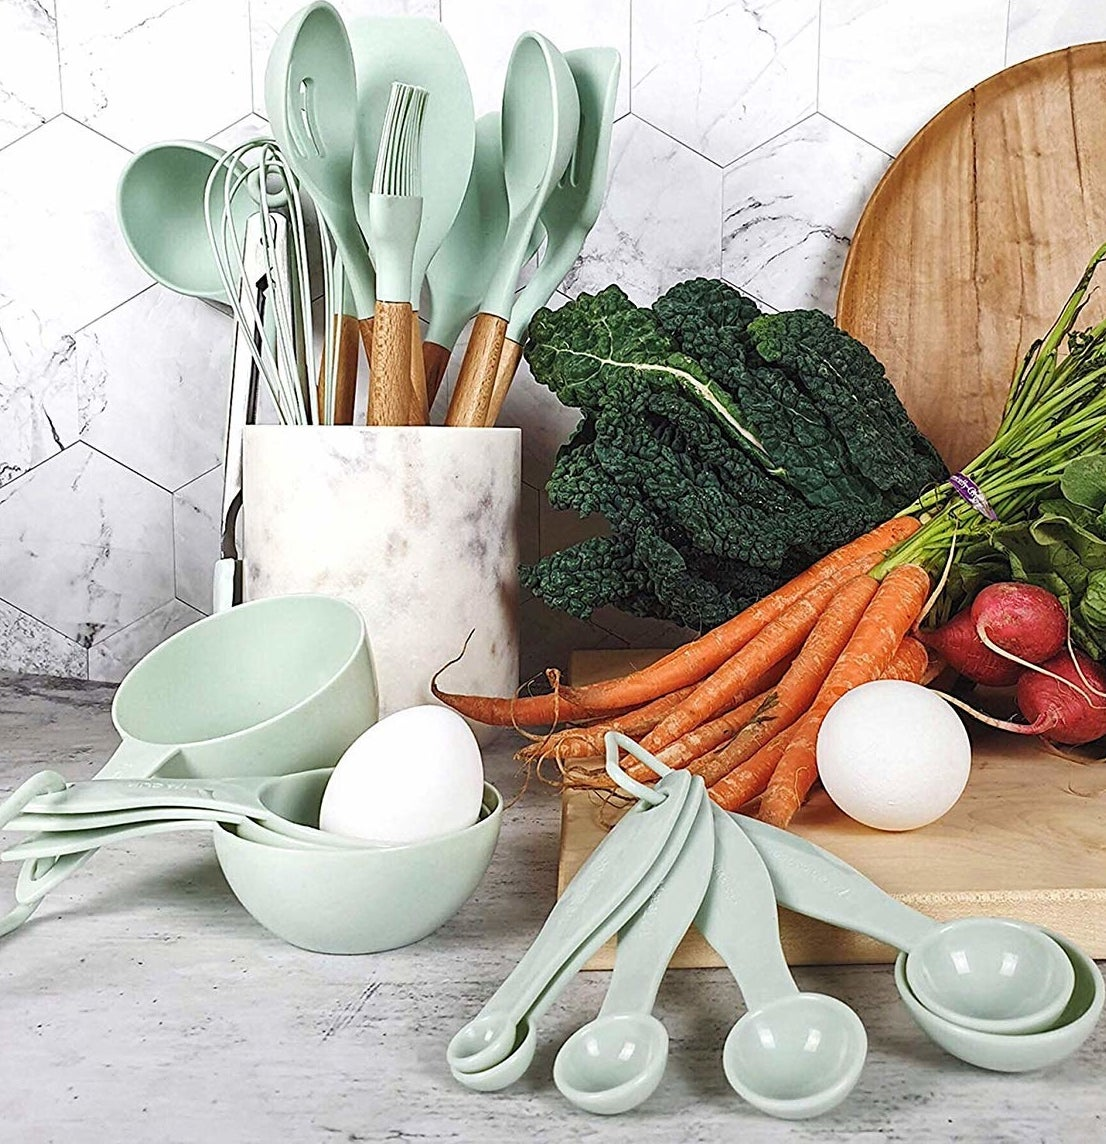 mint green kitchen utensils including measuring cups and spoons